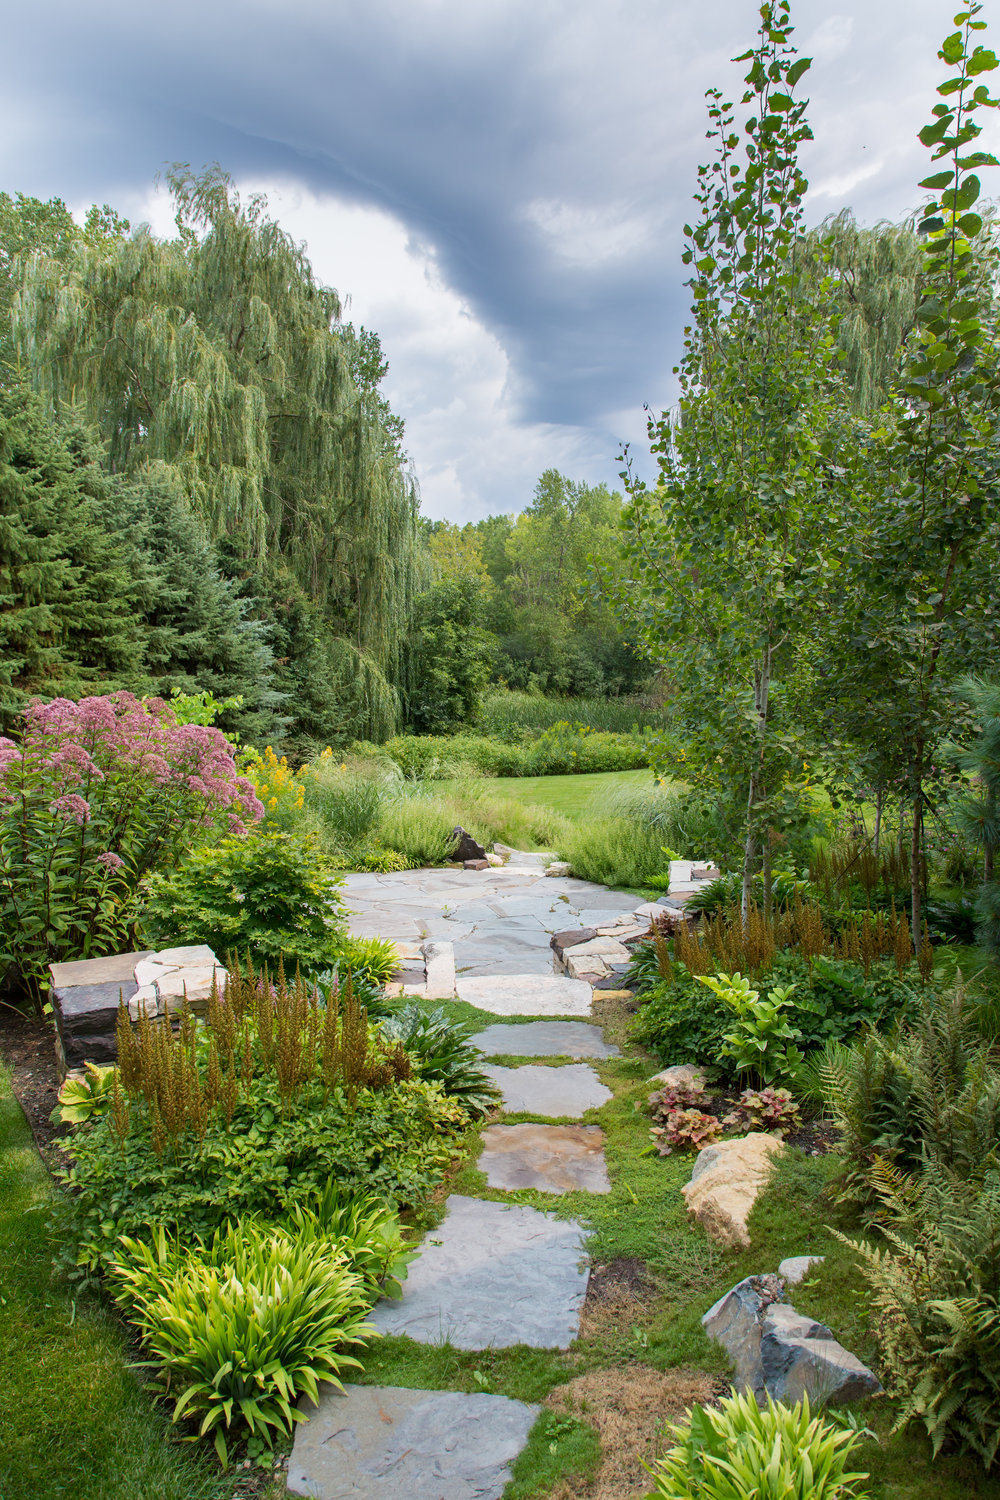 After: A gorgeous view of the seamless transition from the home landscape to its natural surroundings.